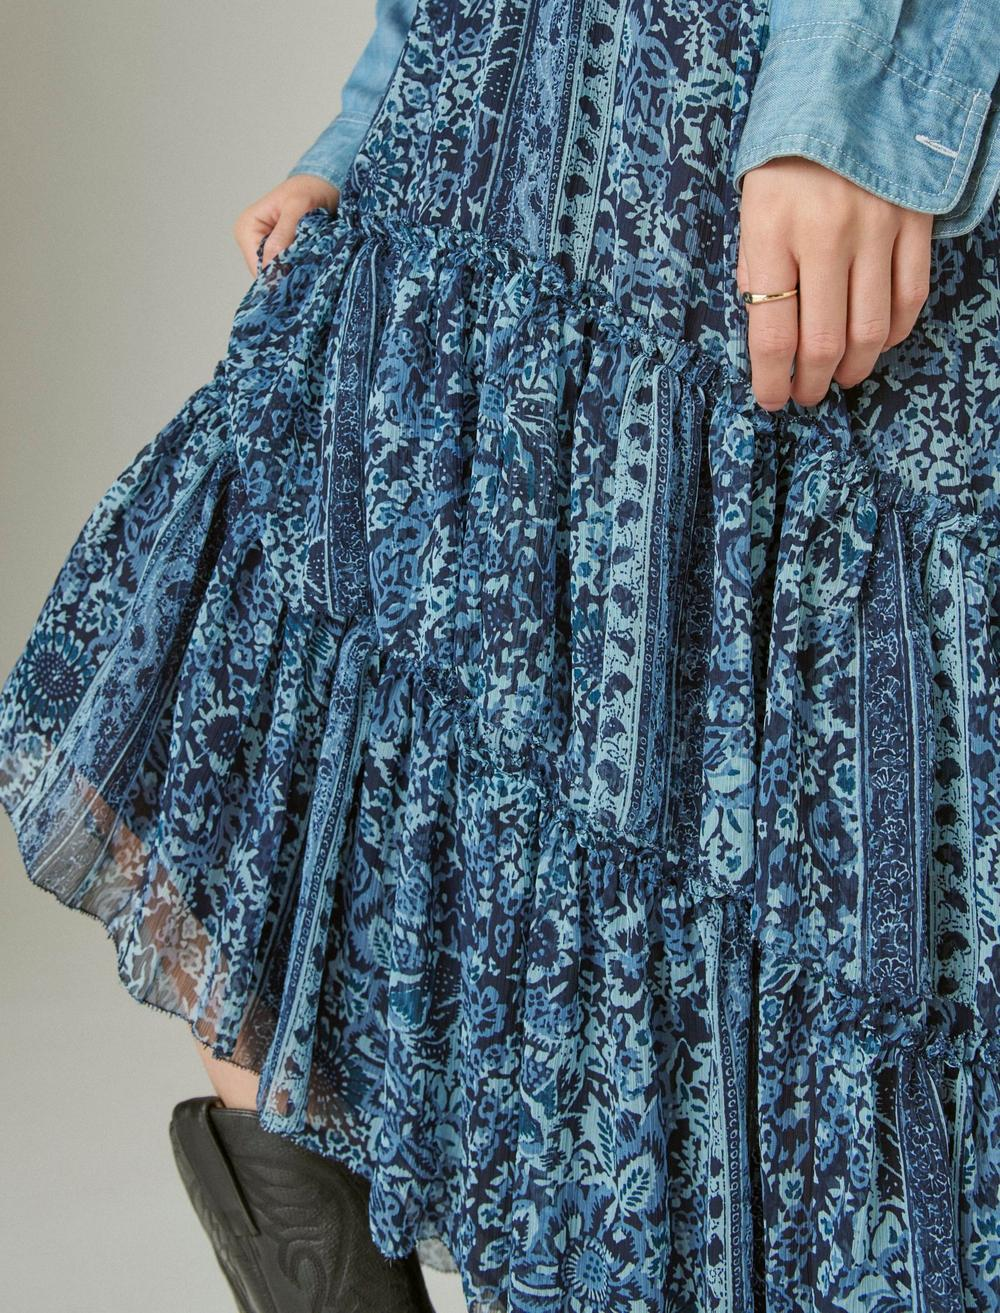 FLORAL PRINT TIERED MAXI SKIRT, image 6